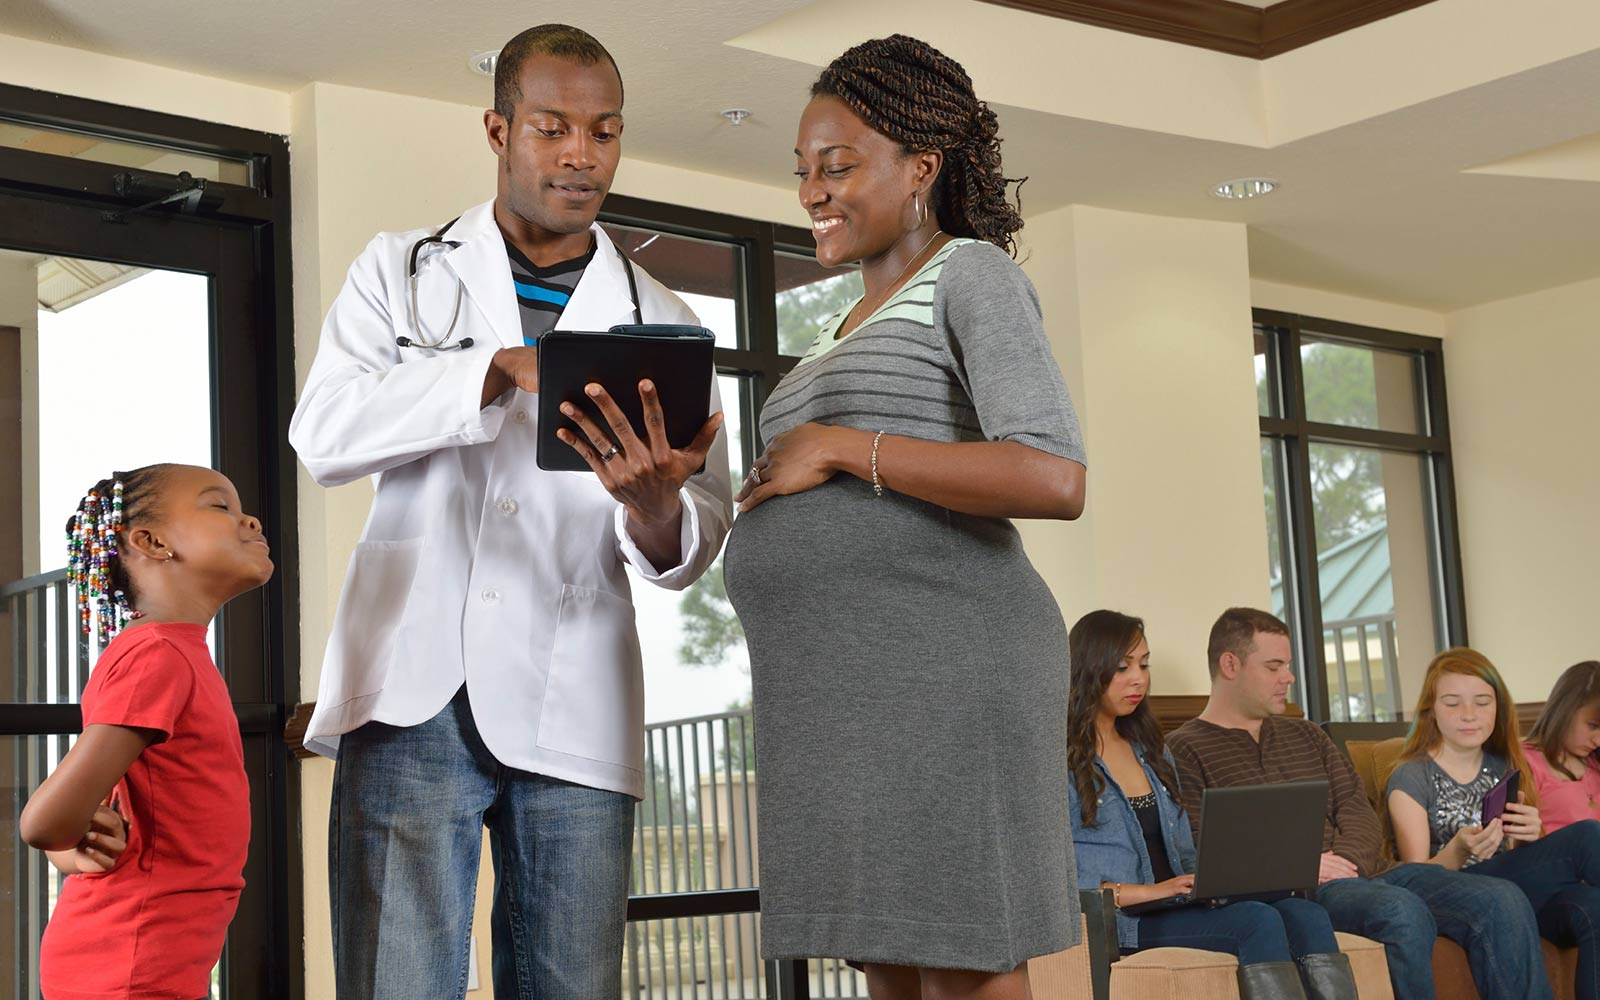 chws-1-in-8-americans-work-in-the-health-sector